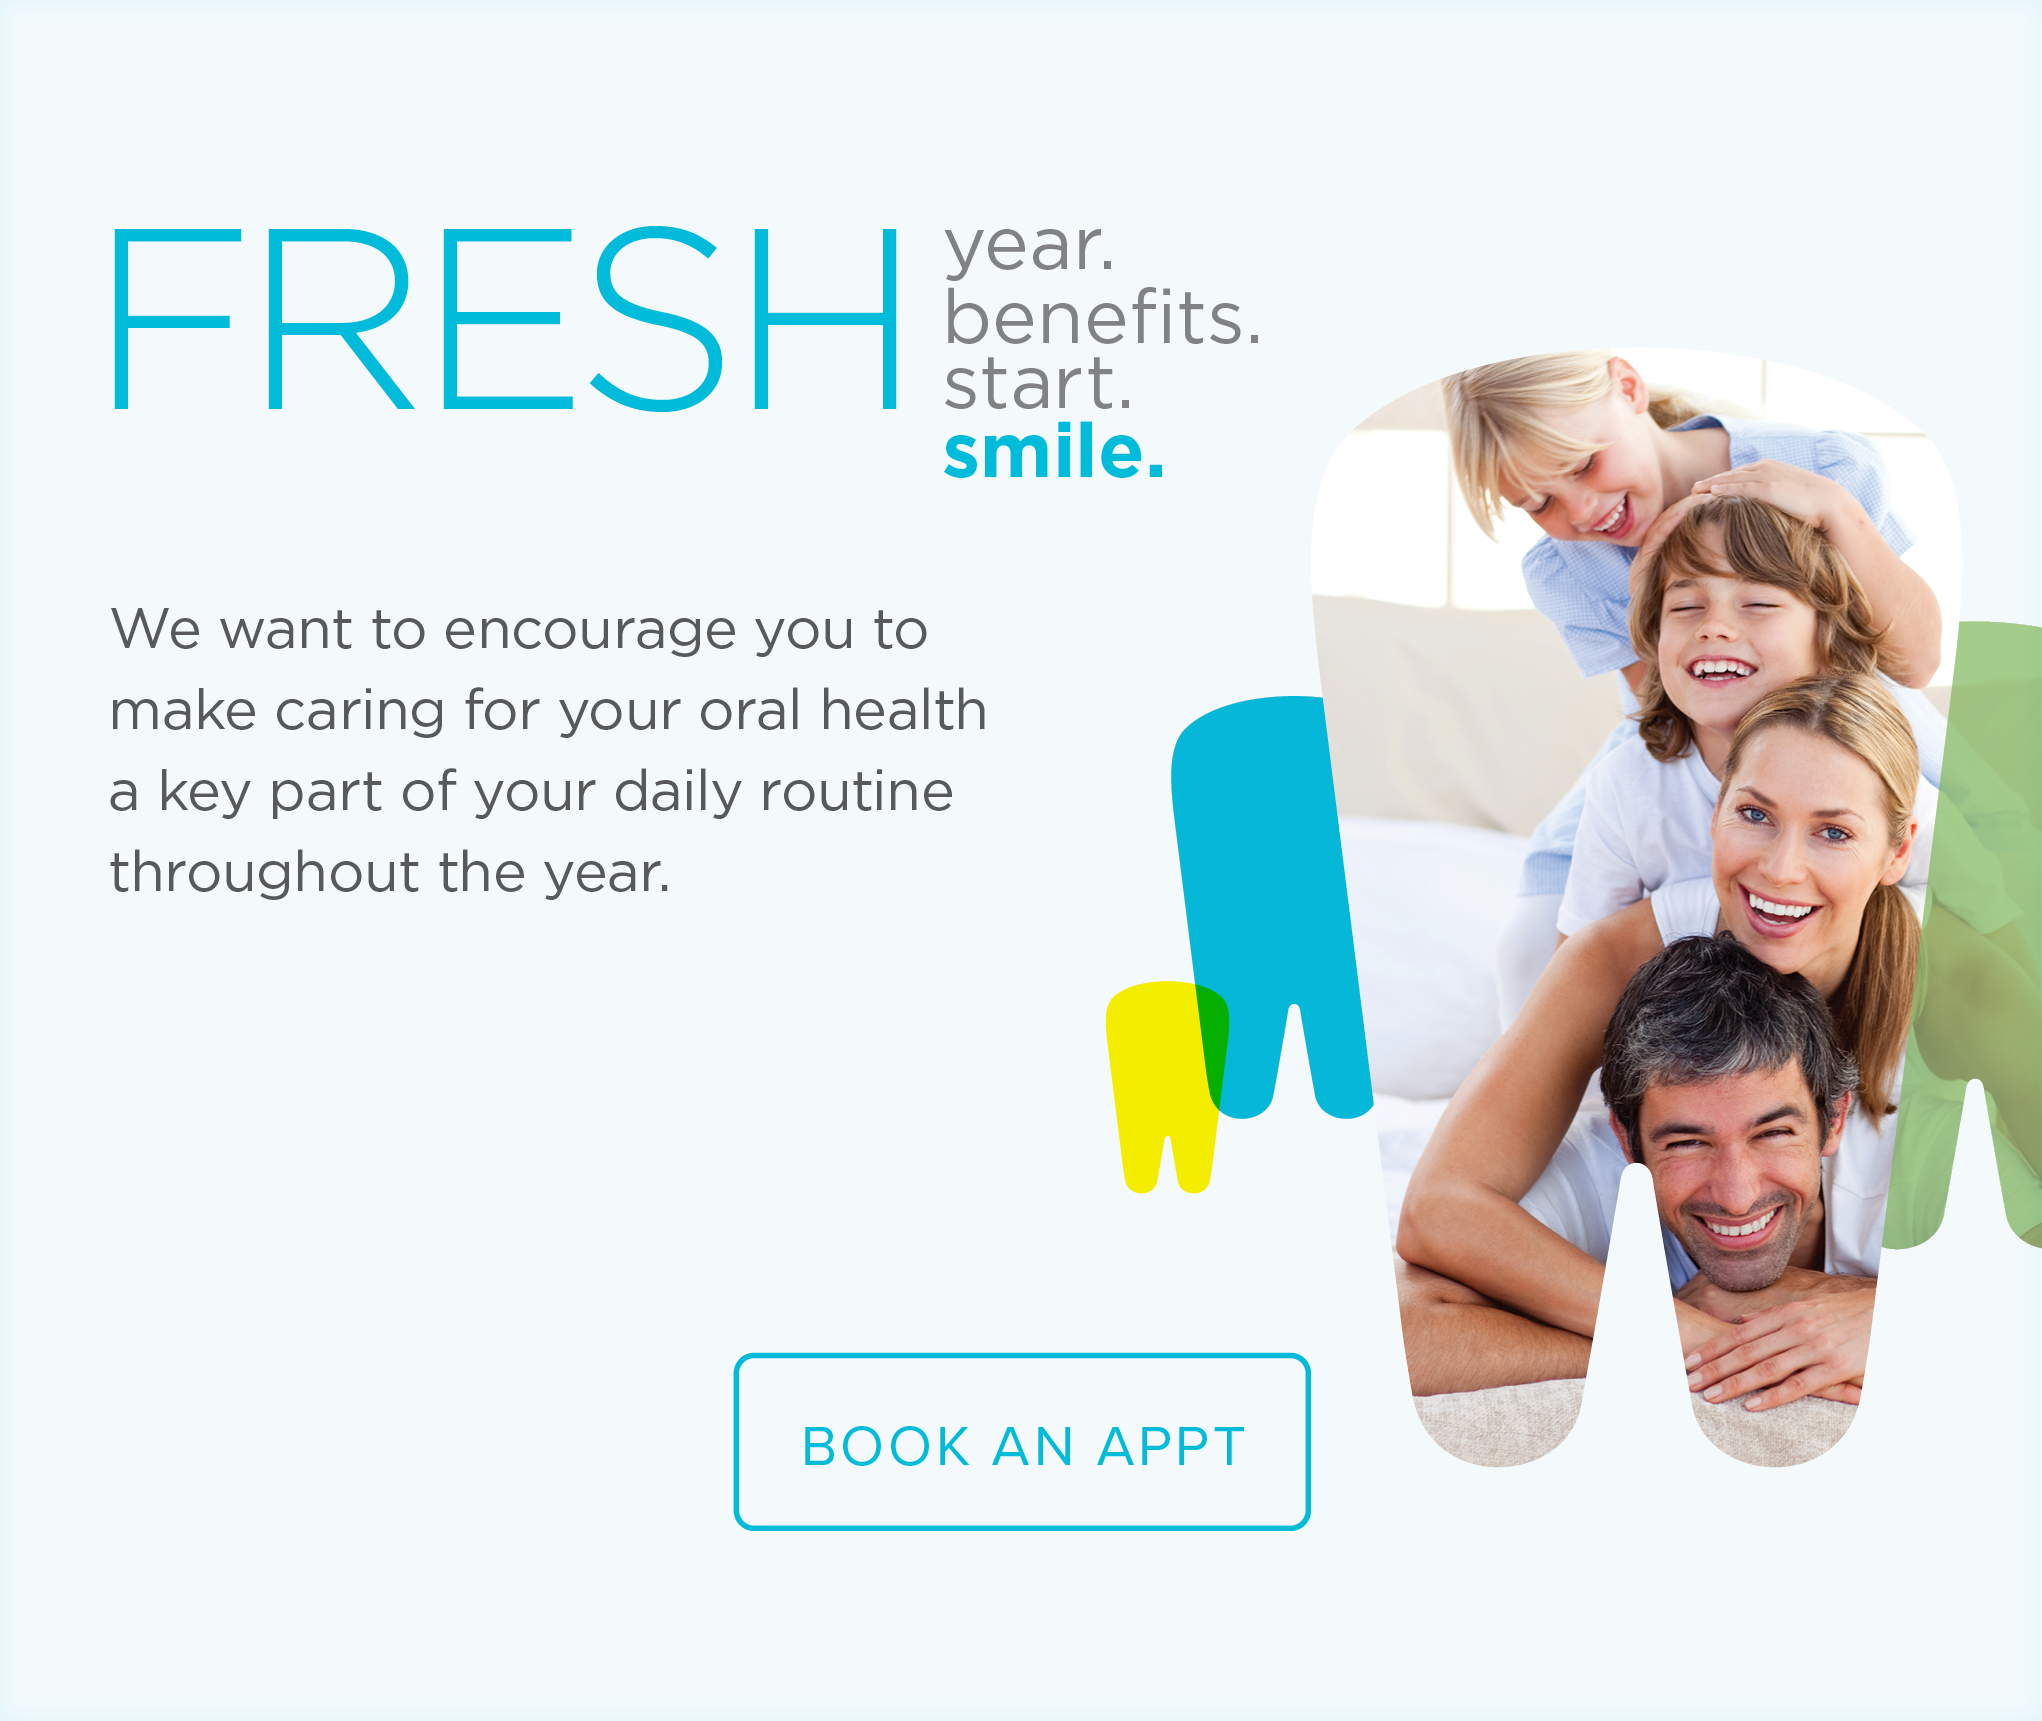 Anaheim Hills Dental Group and Orthodontics - Make the Most of Your Benefits